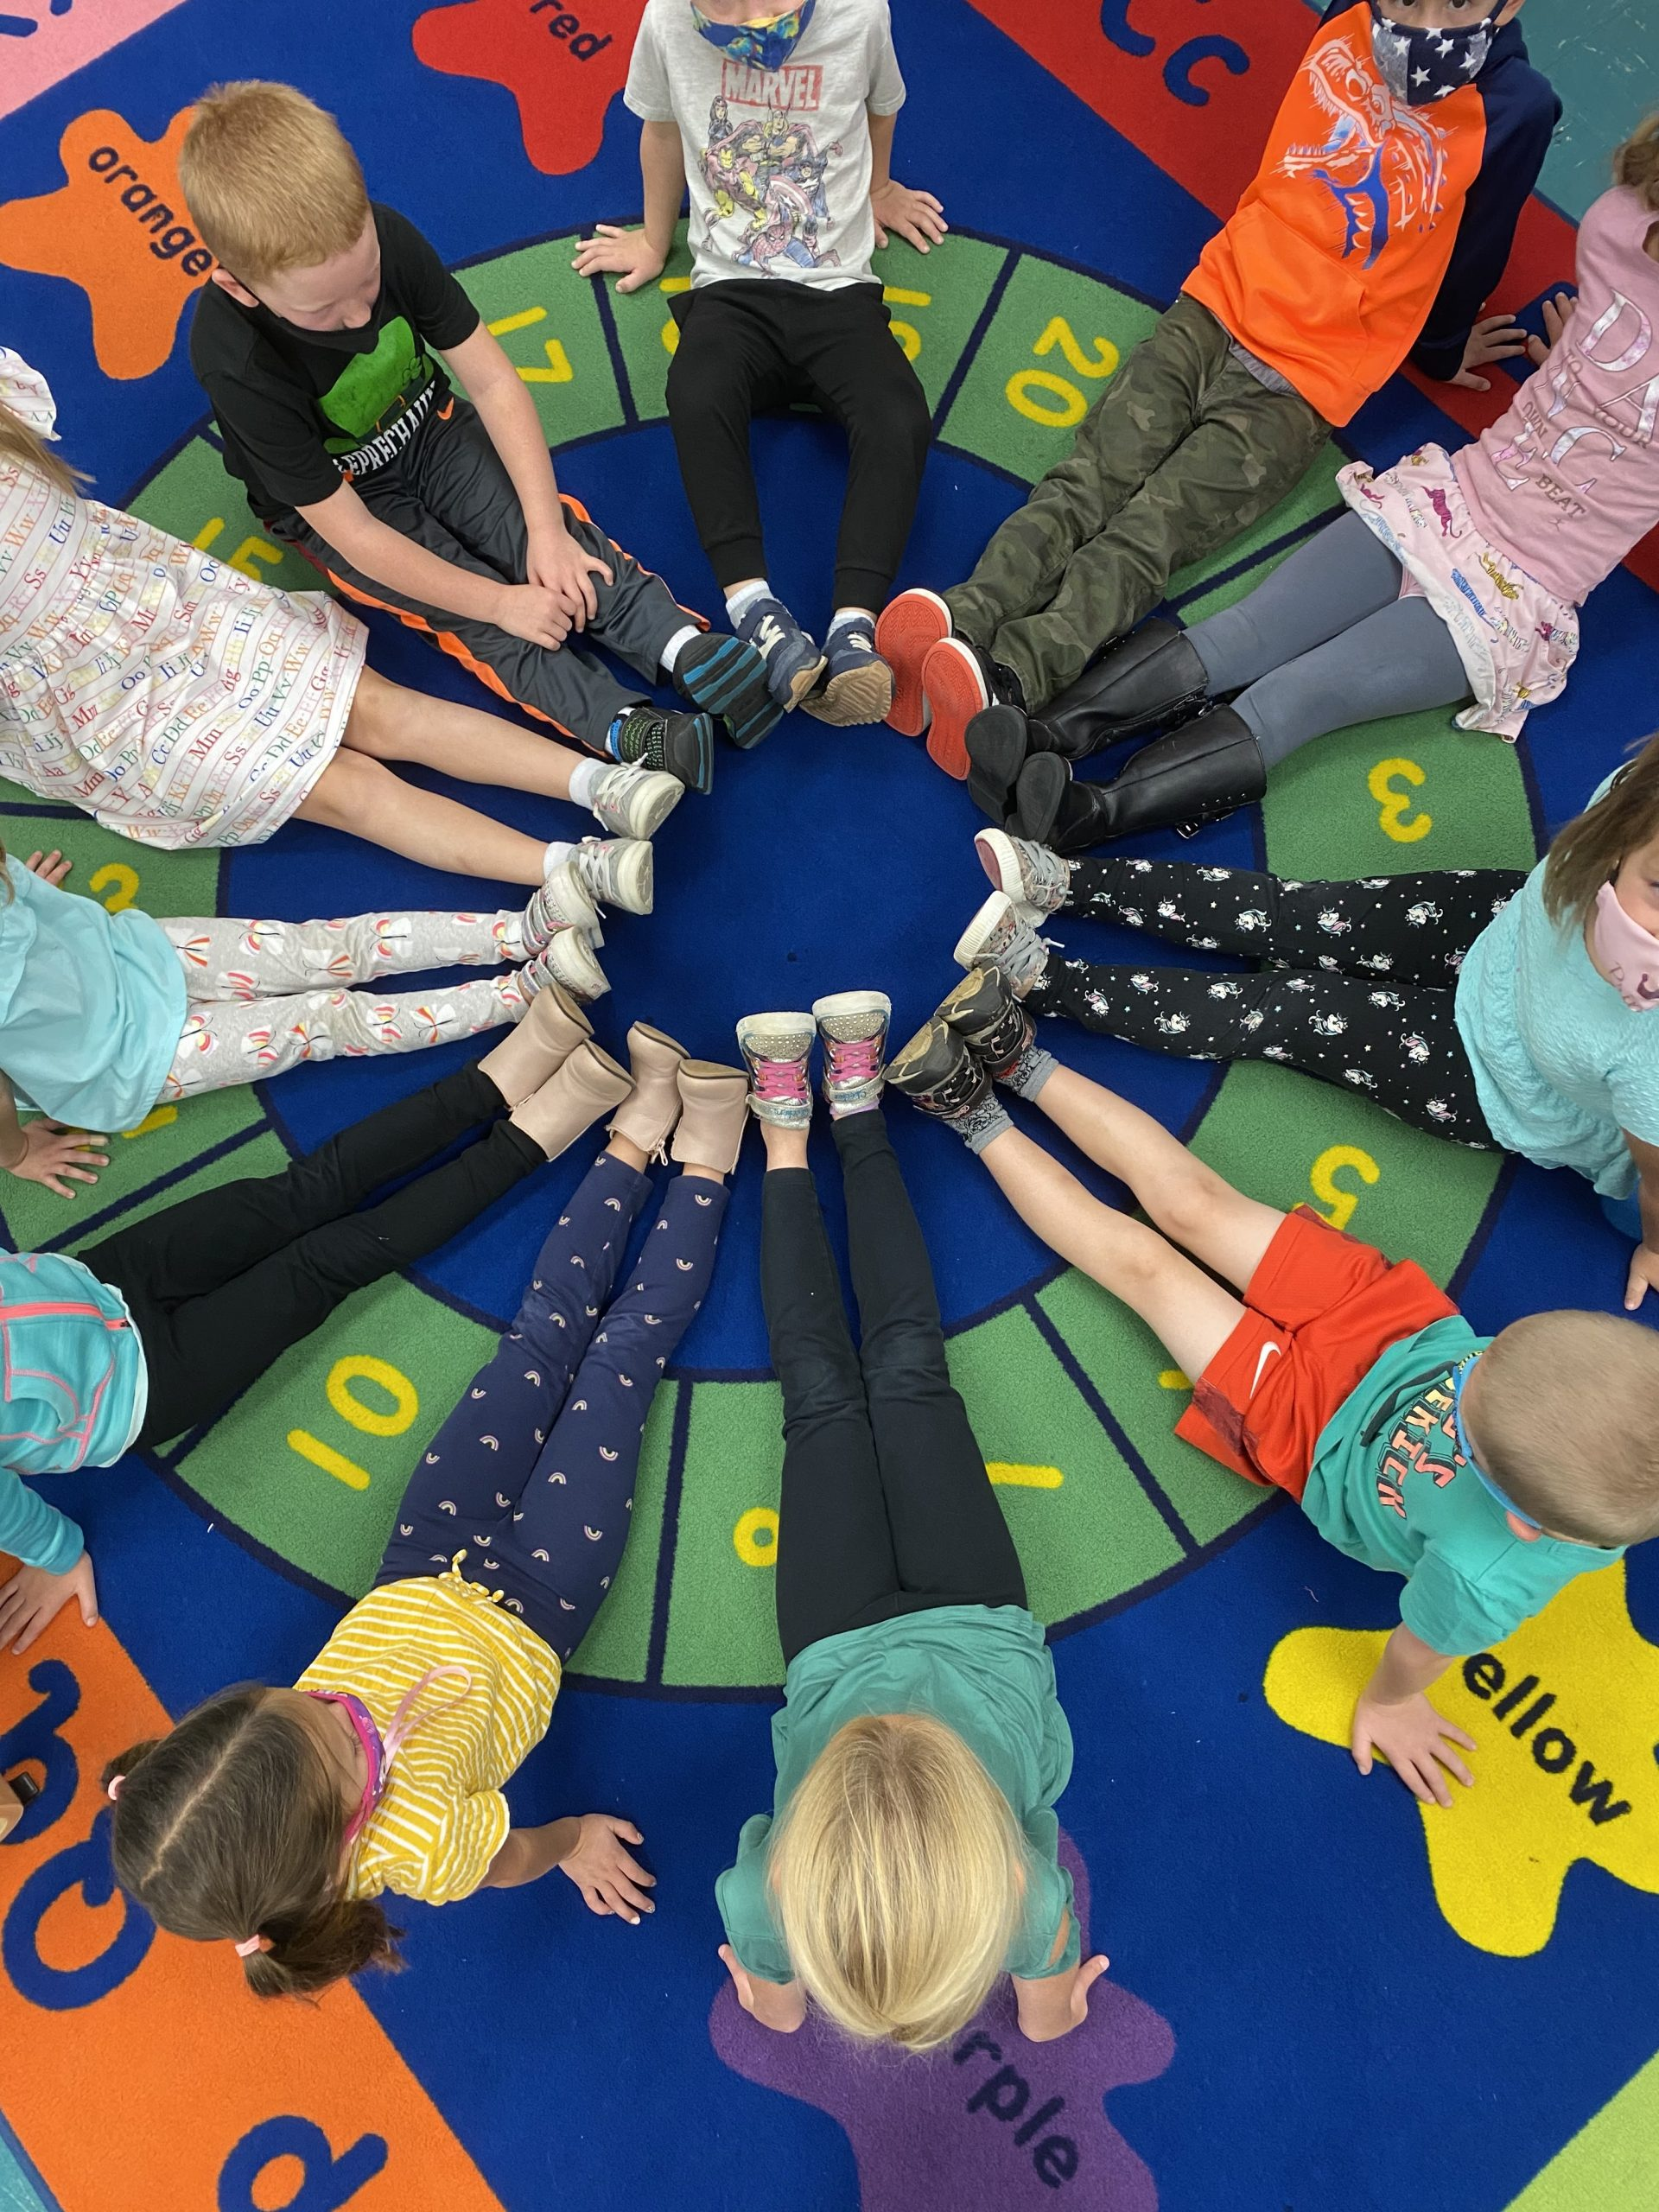 http://www.shirland134.org/wp-content/uploads/2020/12/Kindergarten-students-in-a-circle-scaled.jpg